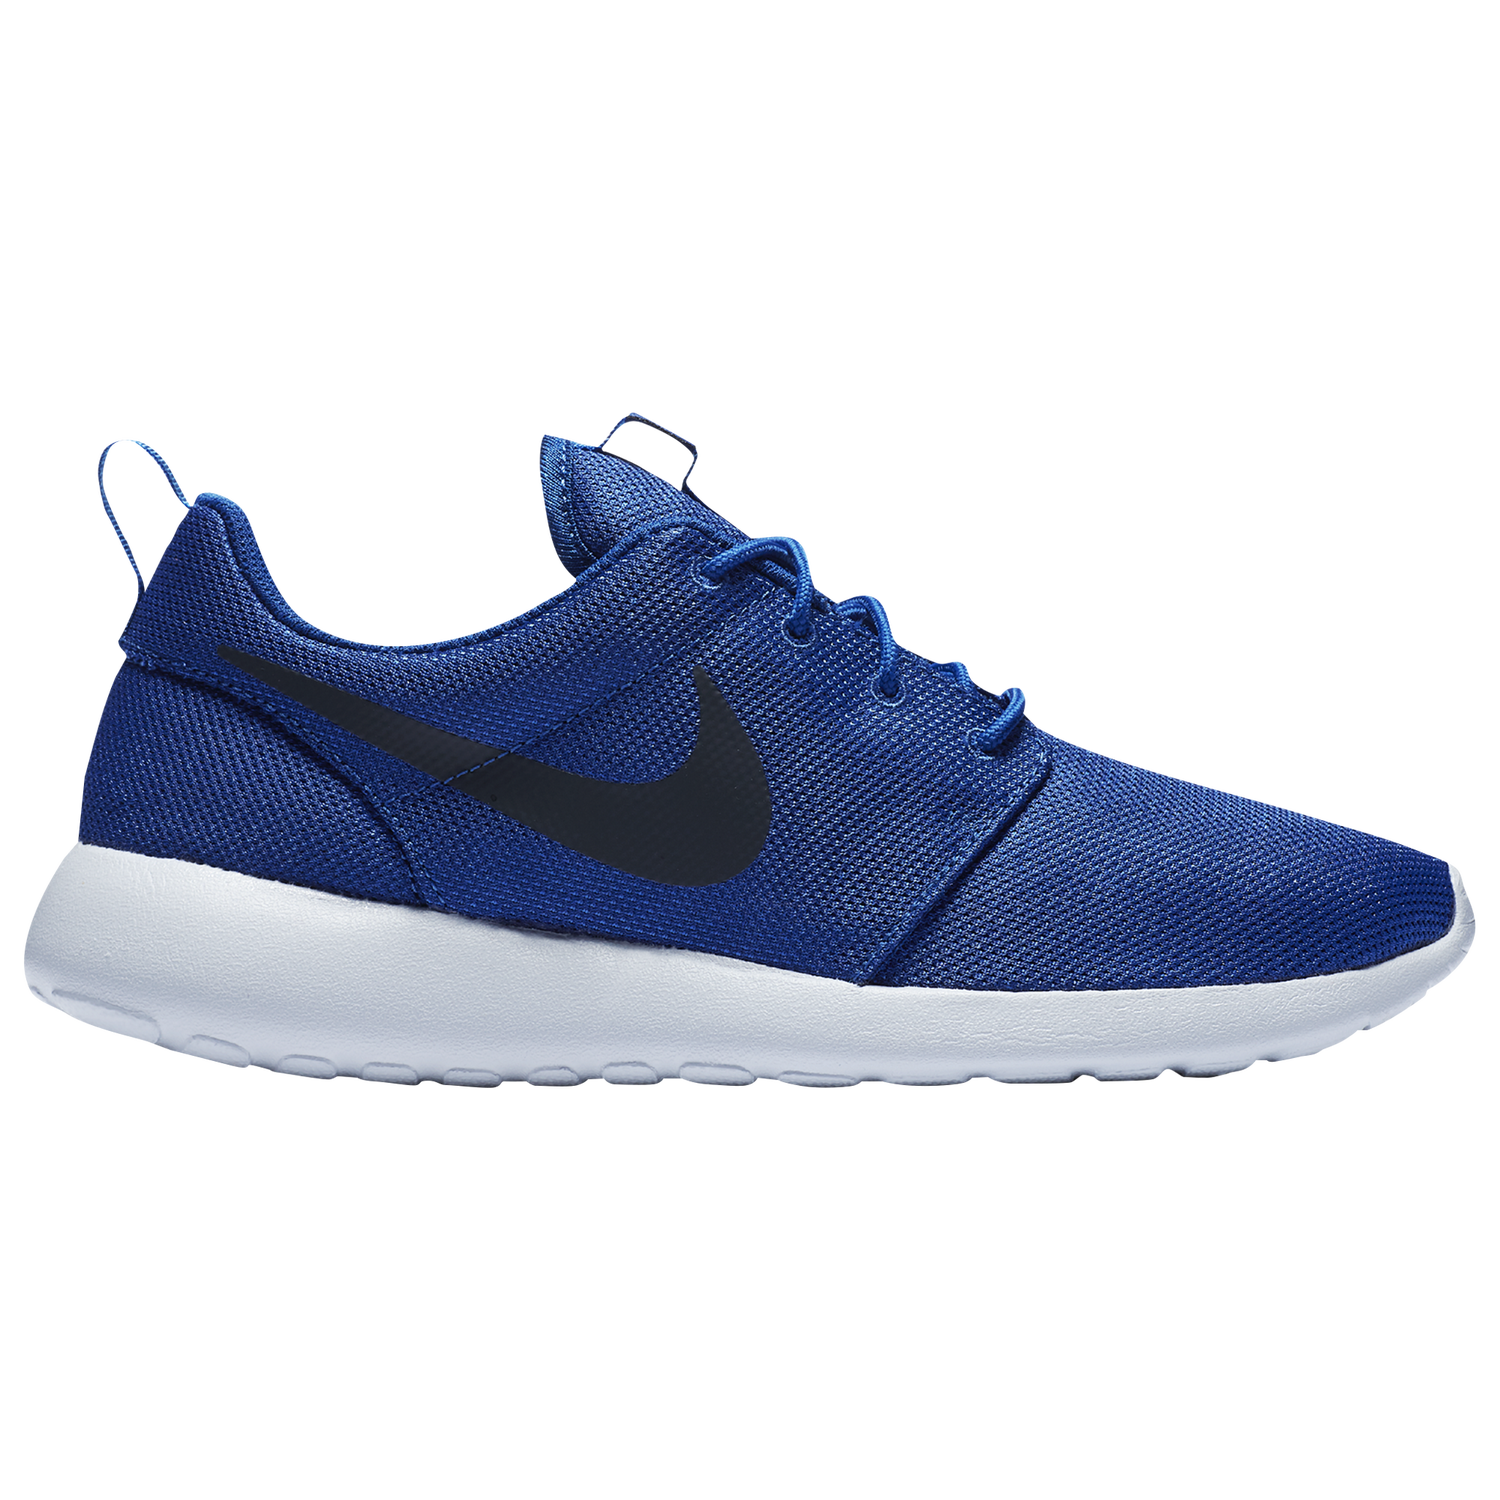 Nike Roshe One Men's Gym Blue/Anthracite/Pure Platinum 11881417